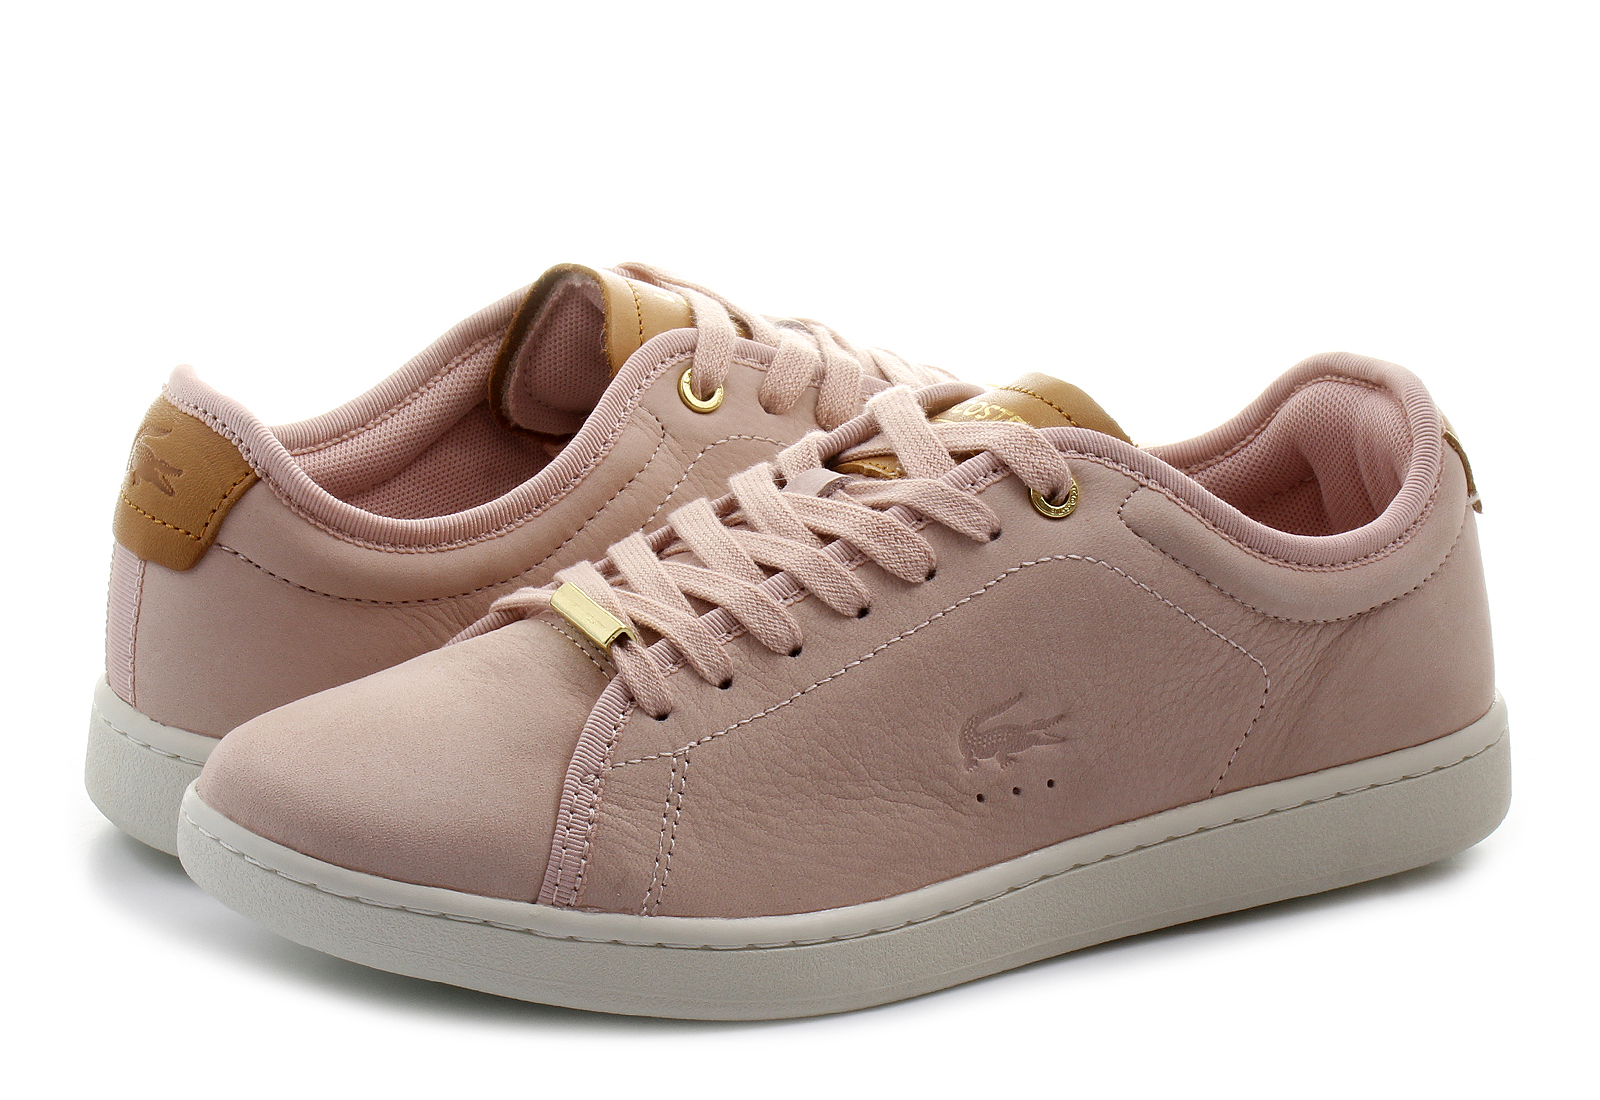 574b54dbbe Lacoste Shoes - Carnaby Evo - 173SPW0043-2E5 - Online shop for ...